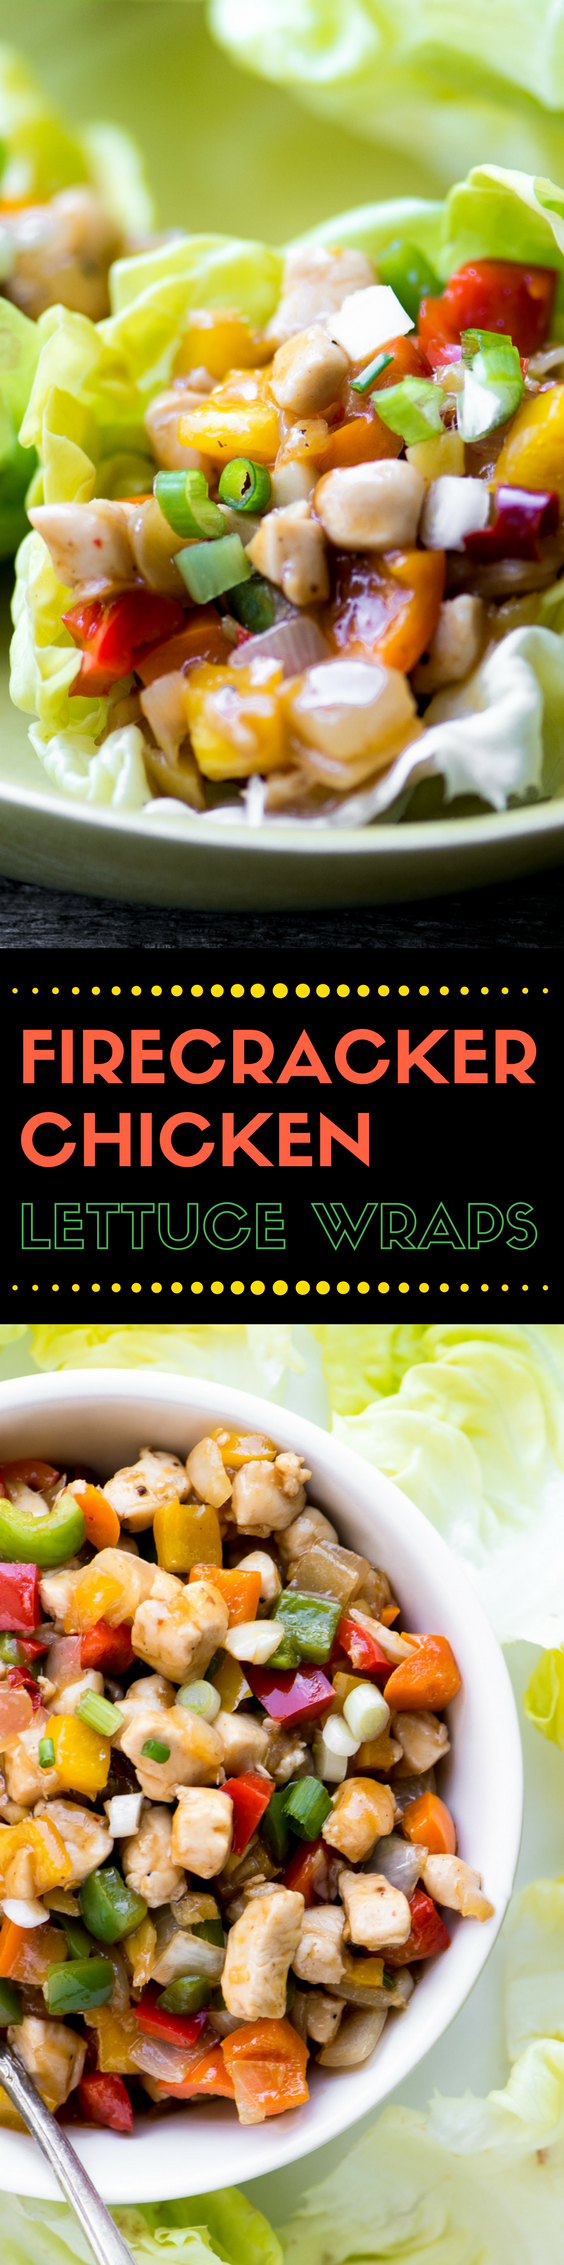 Low carb eating just got a whole lot more interesting with my Firecracker Chicken Lettuce Wraps!  Who needs rice when you've got fresh crunchy lettuce leaves?  Everybody's going to come back for seconds and thirds, and that's ok because this meal is low calorie and super healthy! #chickenwraps #lettucewraps #healthy #chicken #dinner #dinnericeas #glutenfree #lowcarb #salad #appetizer